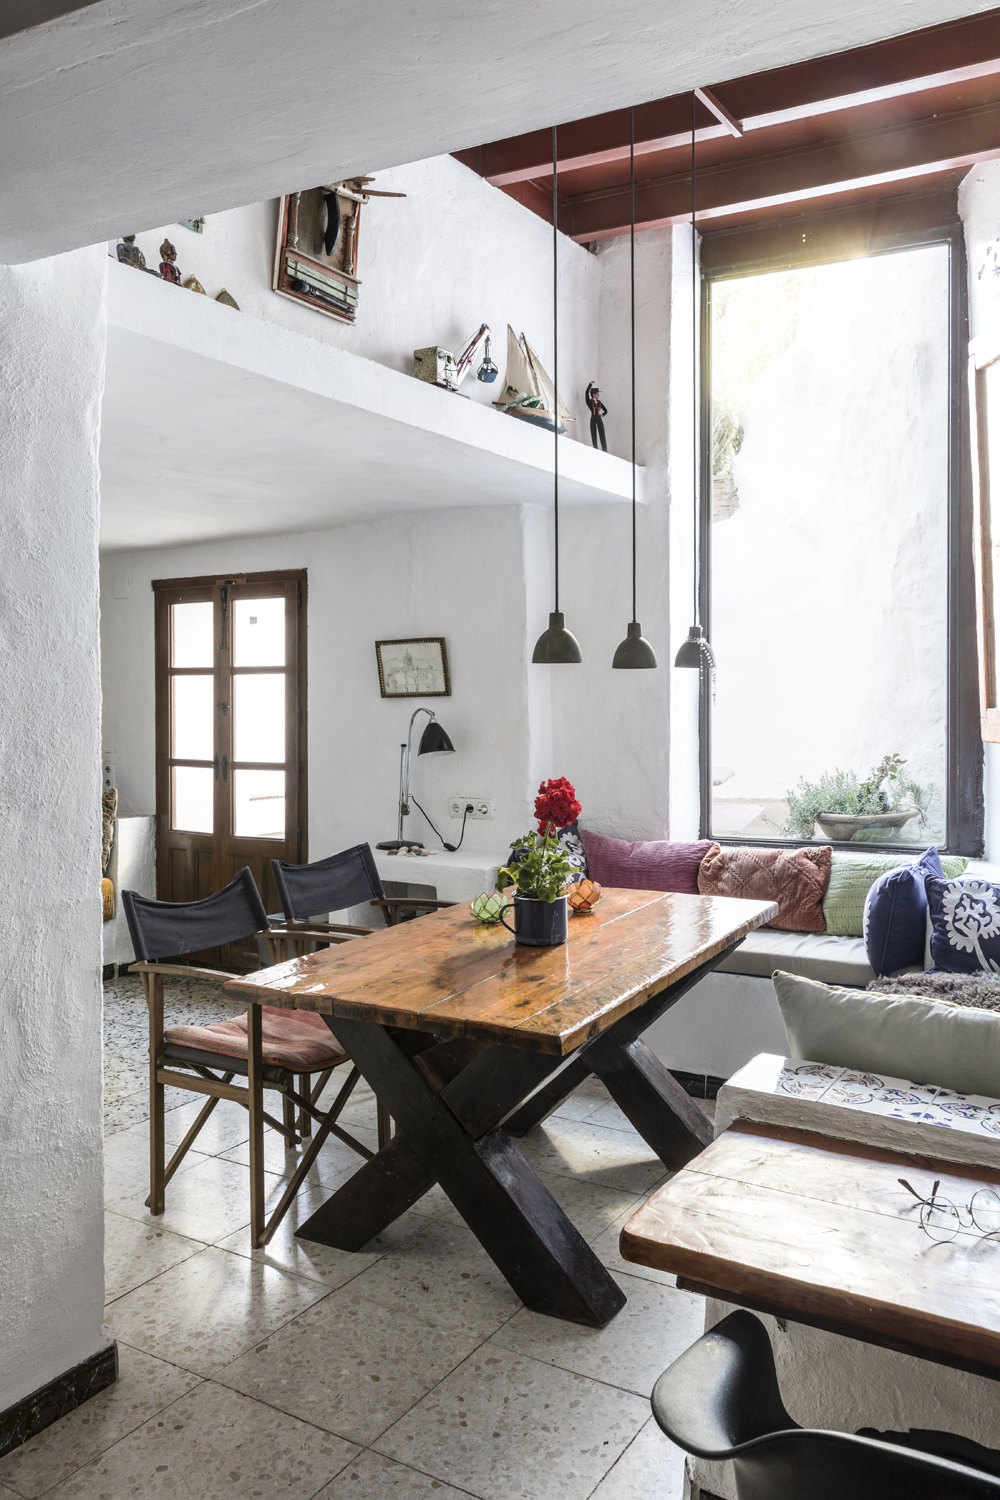 Canillas de Aceituno, Spain, holiday, rent, apartment, townhouse, rental, vacationhome, home, interior, spanish, style, interiorphotography, interior design, photographer, Frida Steiner, Visualaddict, visualaddictfrida, kitchen, dining, diningroom, diningtable, benches, pillows, colorful interior